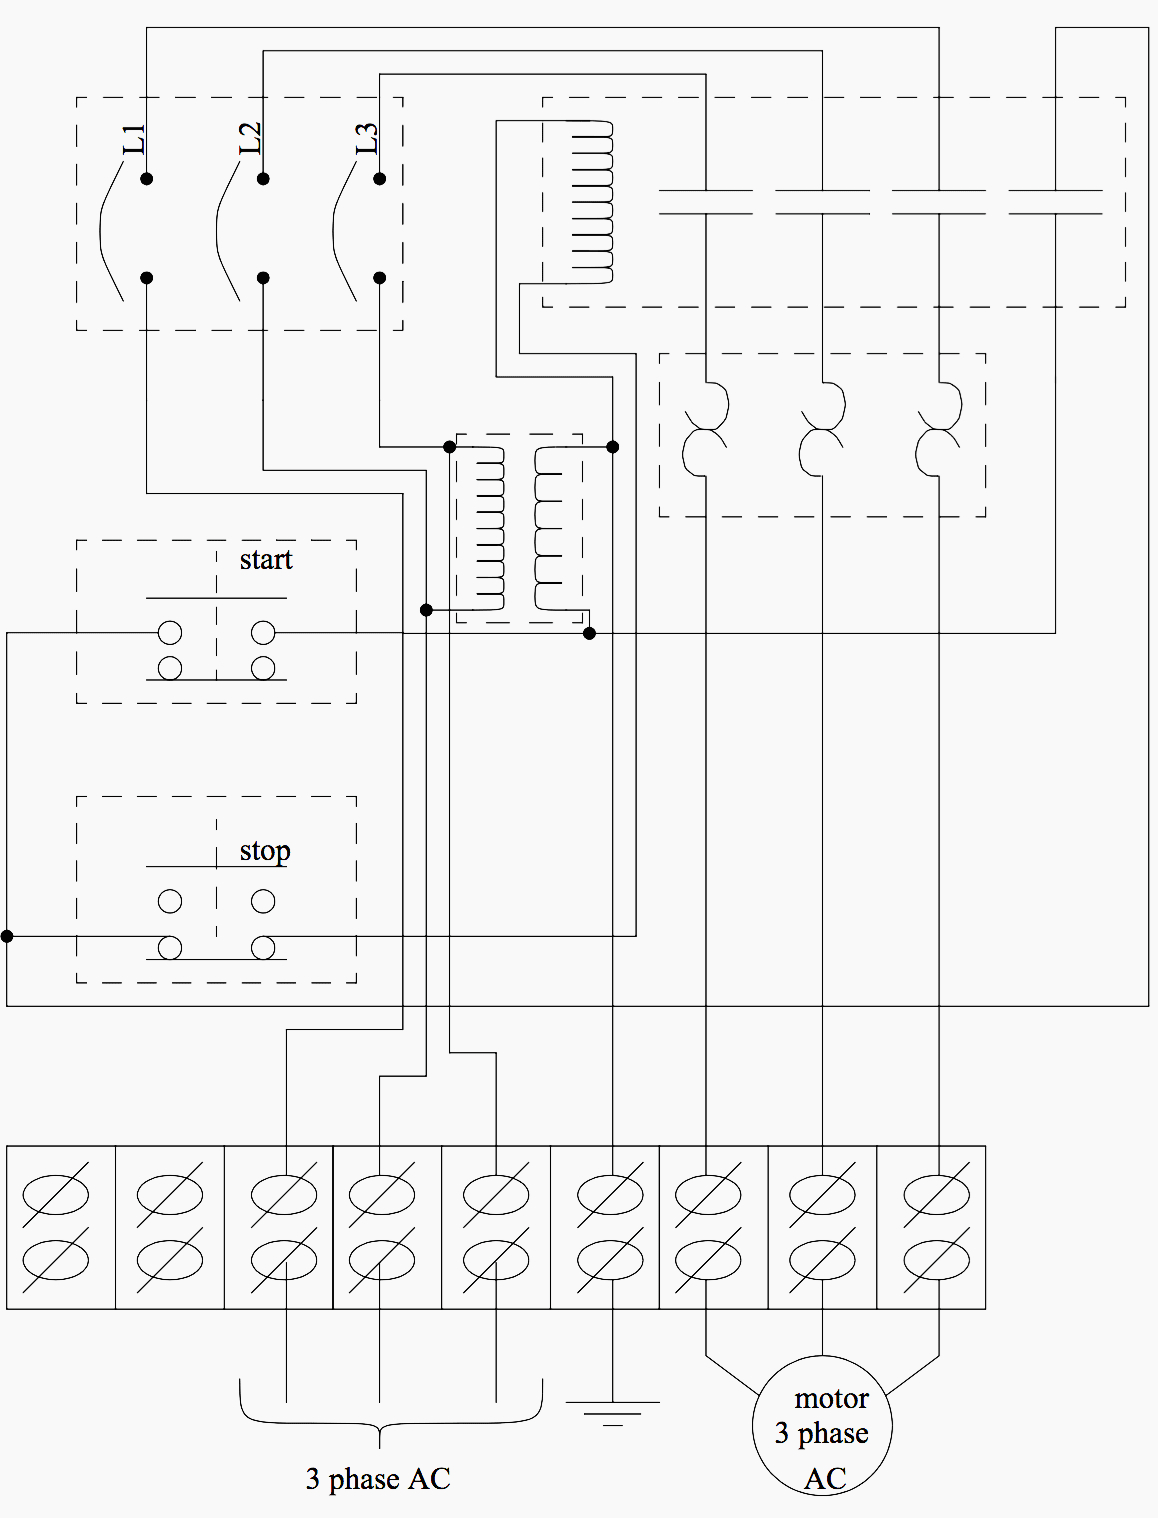 Electrical Schematic Wiring Diagram Video | Wiring Diagram - Electrical Panel Wiring Diagram